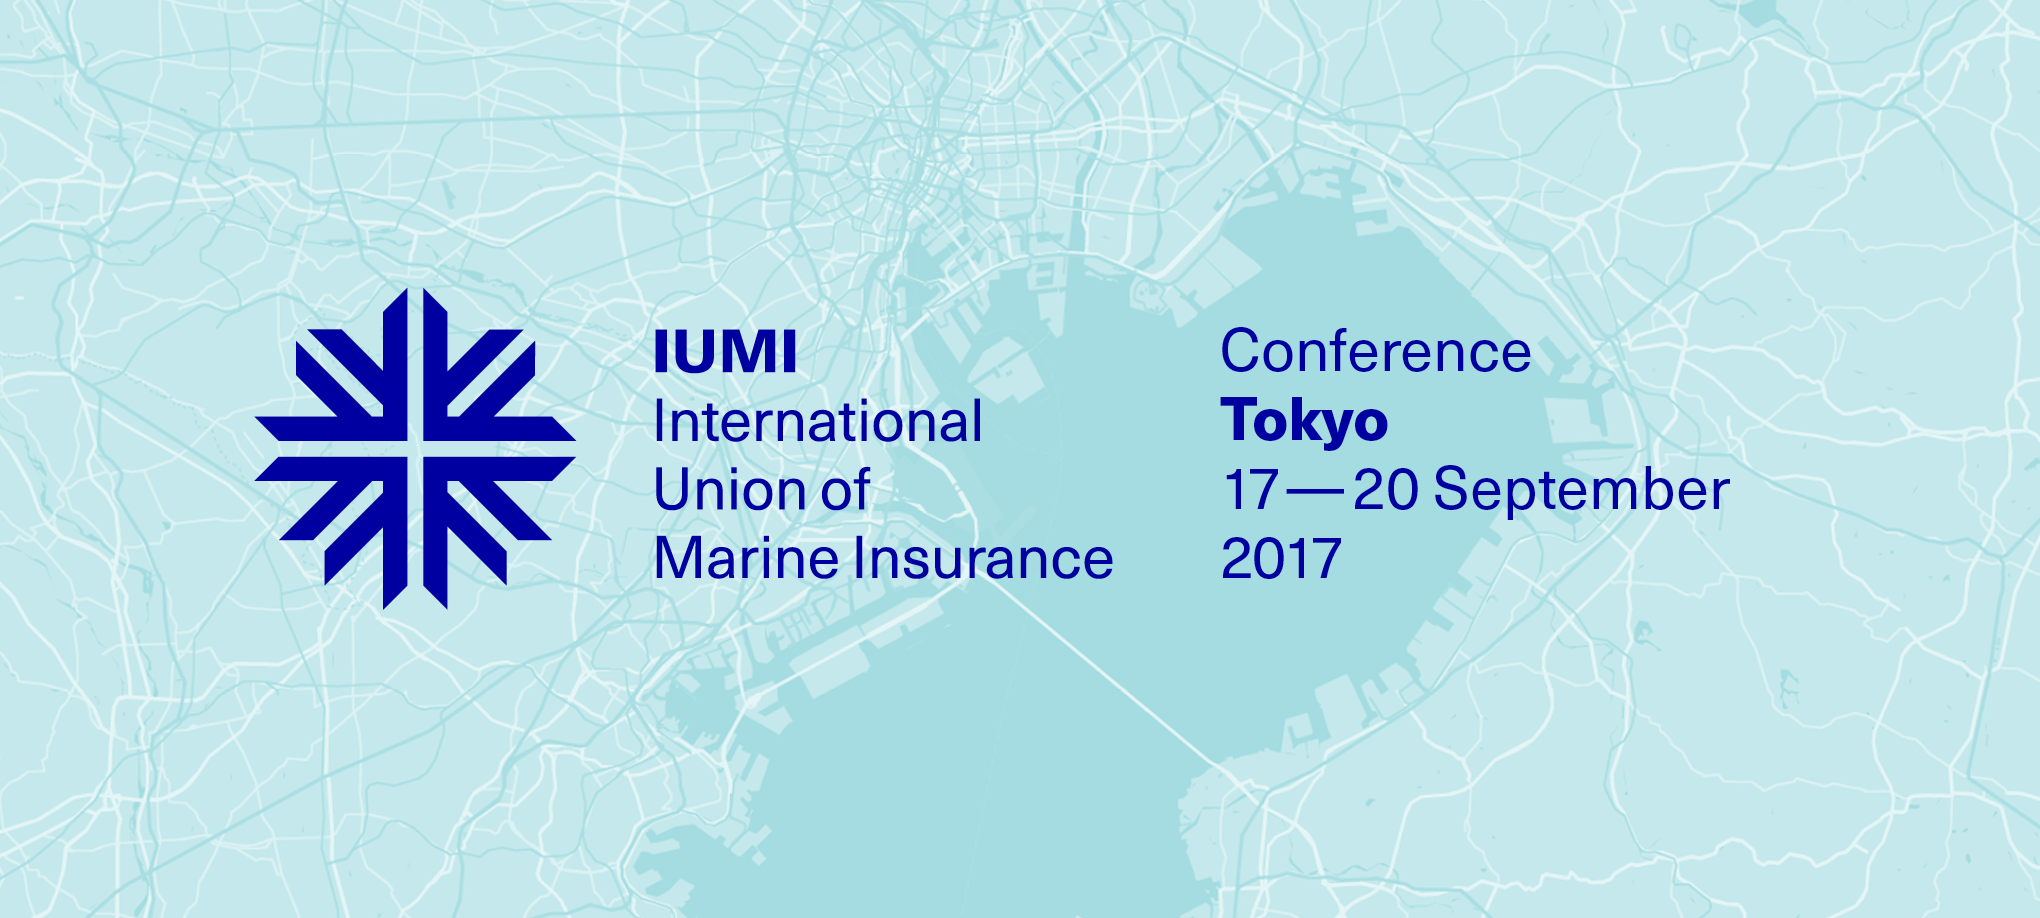 tokyo marine insurance analyse A review of footprint analysis tools for monitoring impacts on sustainability the over-exploitation of marine ecosystem investments, insurance, tax, and.